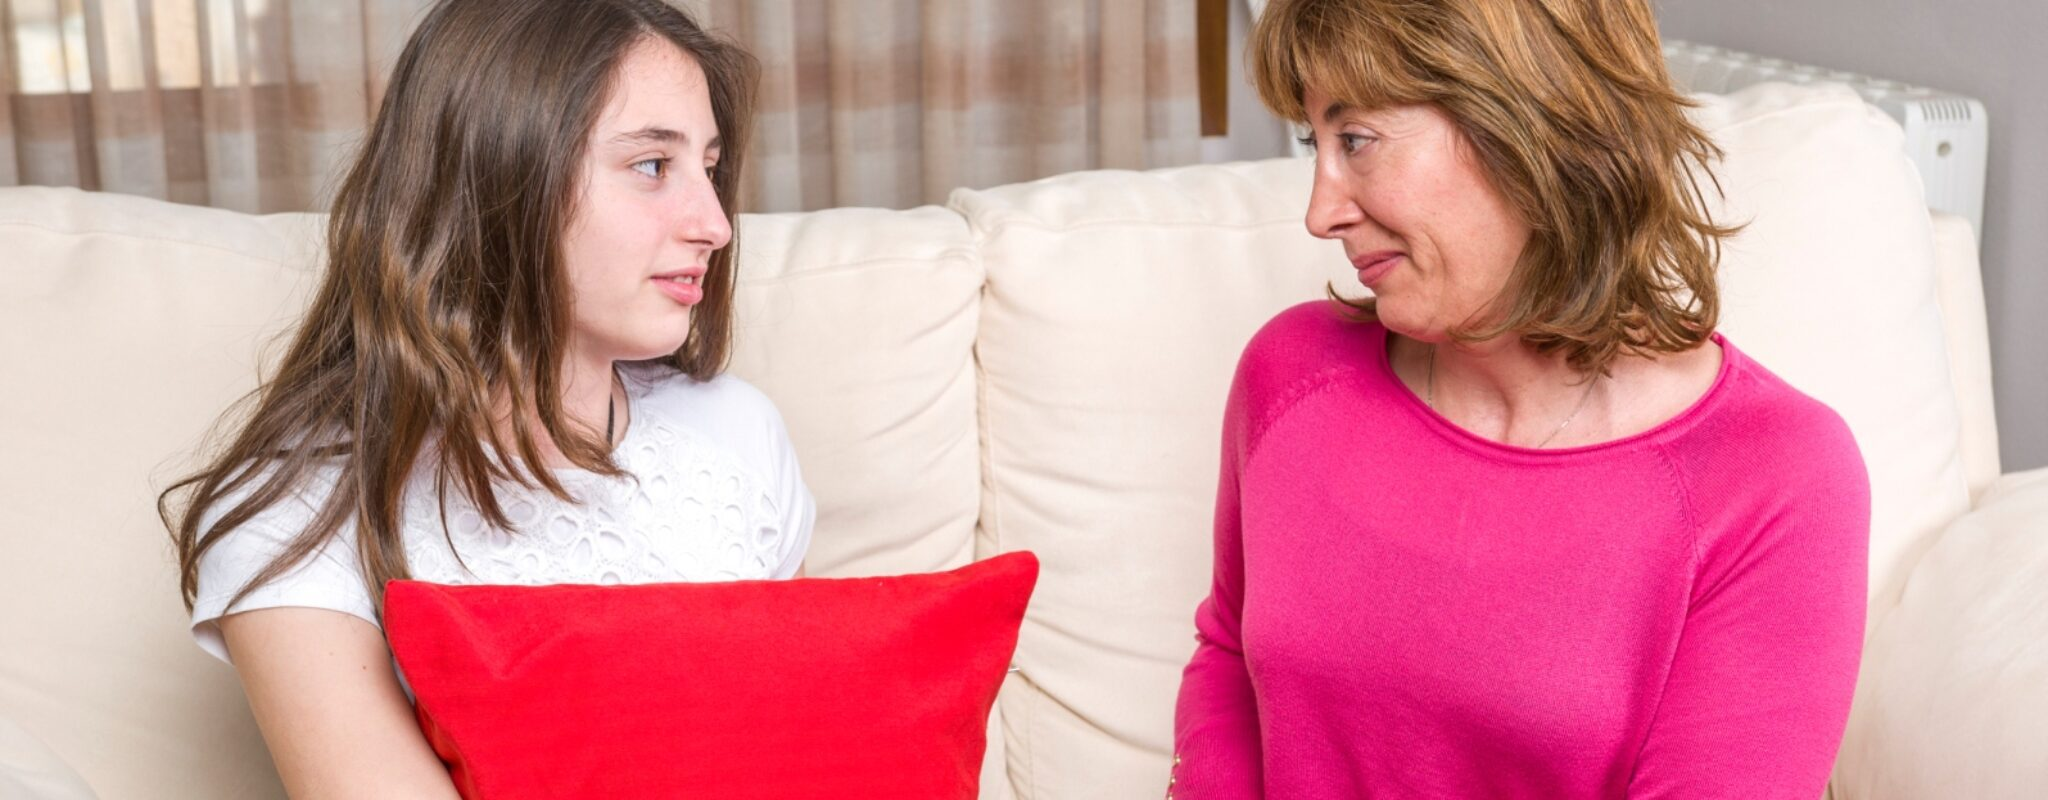 Talking to Kids About Teen Dating Violence, Powered by Nemours Children's Health System